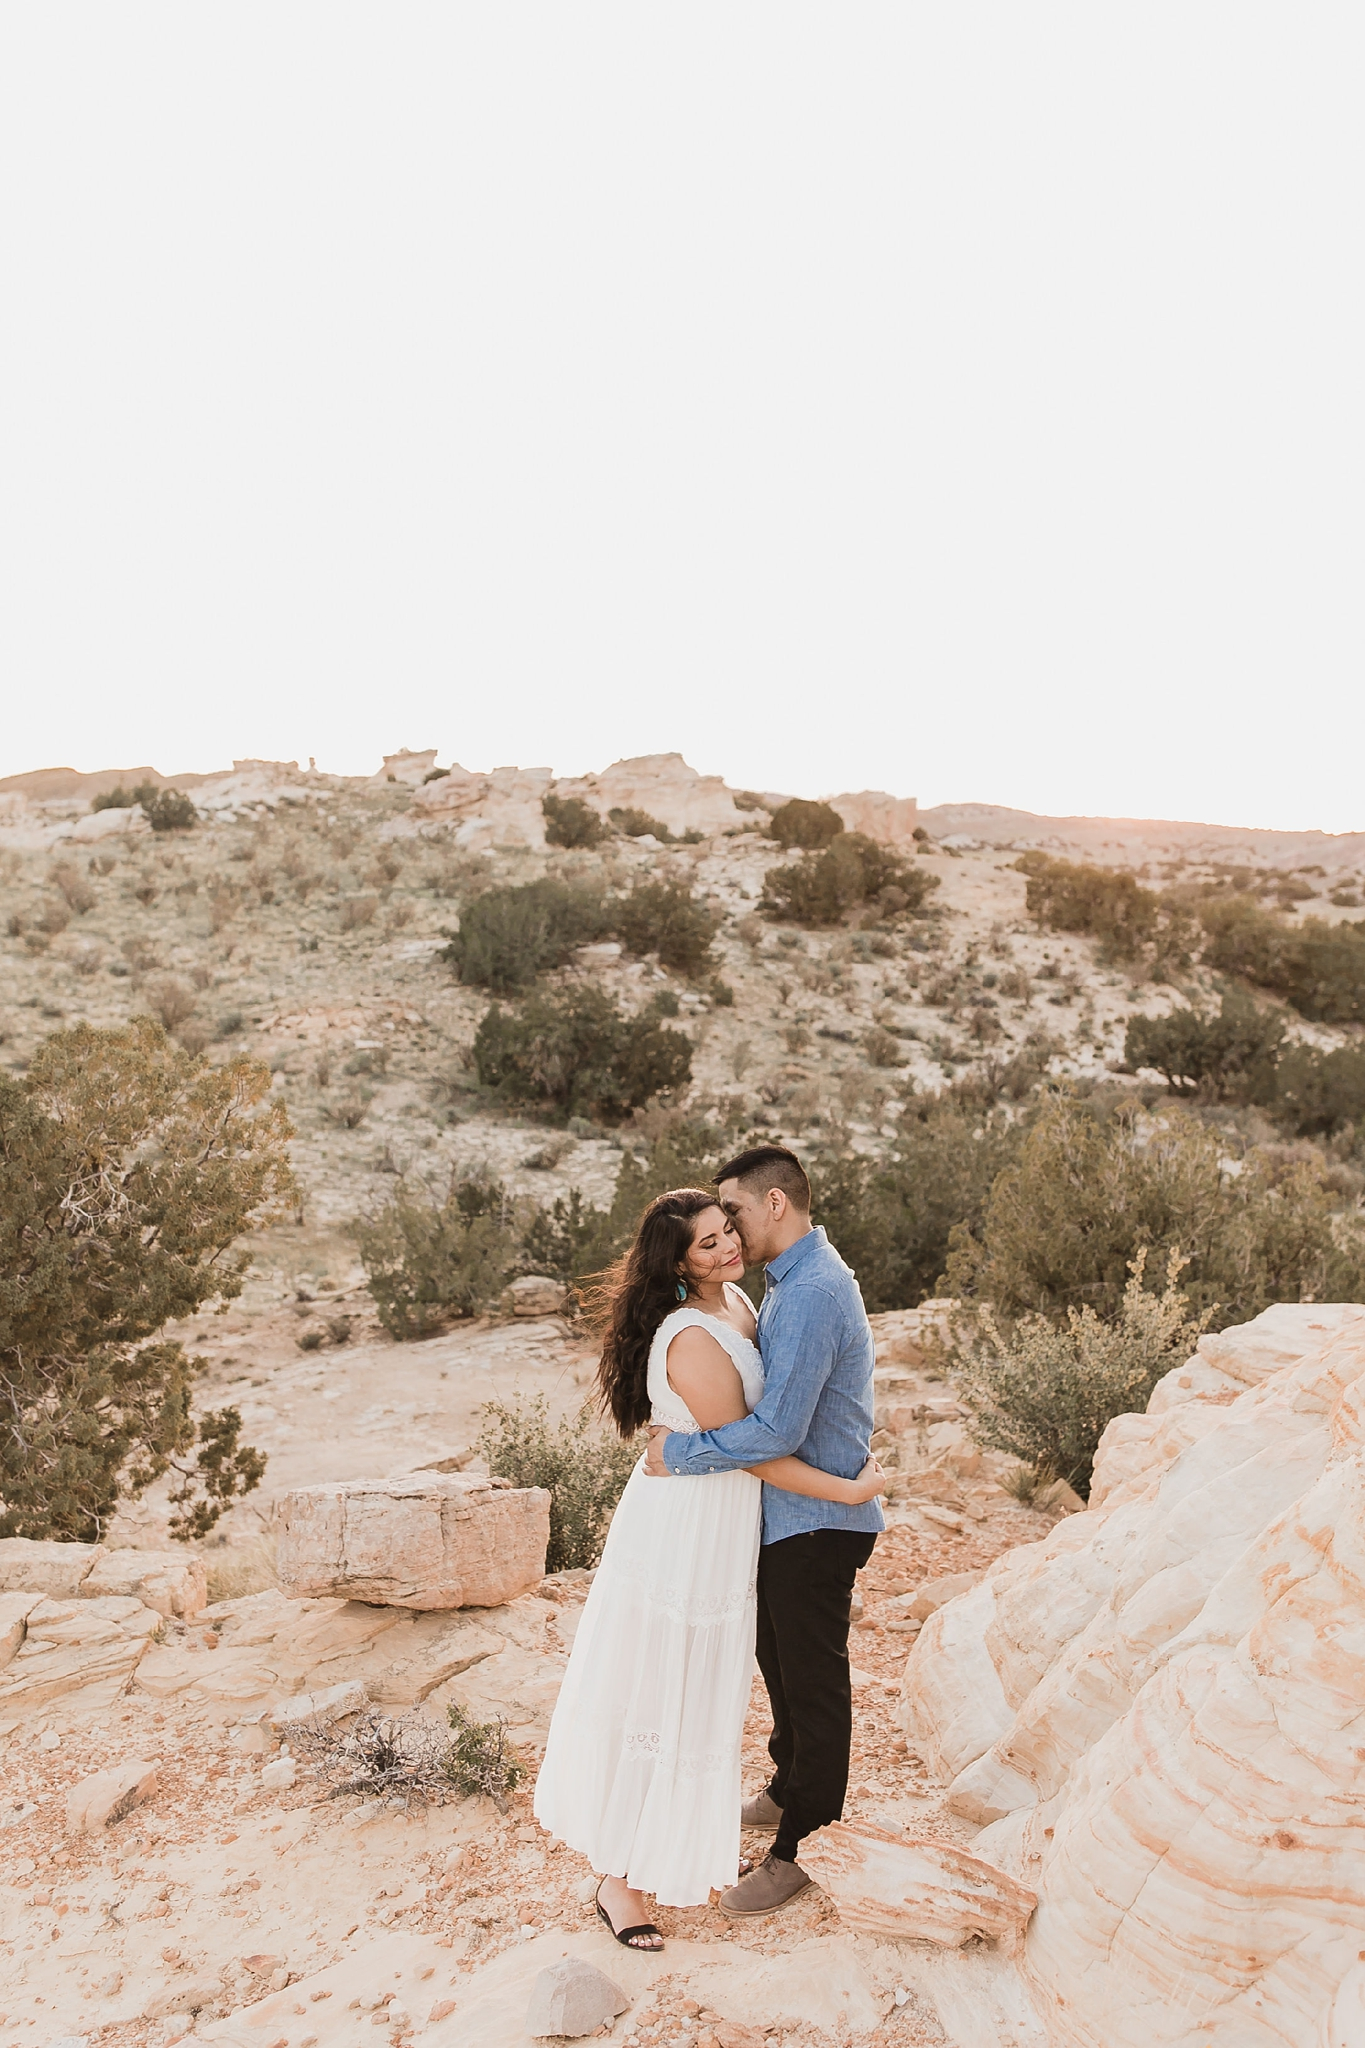 Alicia+lucia+photography+-+albuquerque+wedding+photographer+-+santa+fe+wedding+photography+-+new+mexico+wedding+photographer+-+new+mexico+wedding+-+new+mexico+engagement+-+white+mesa+engagement+-+desert+engagement_0009.jpg